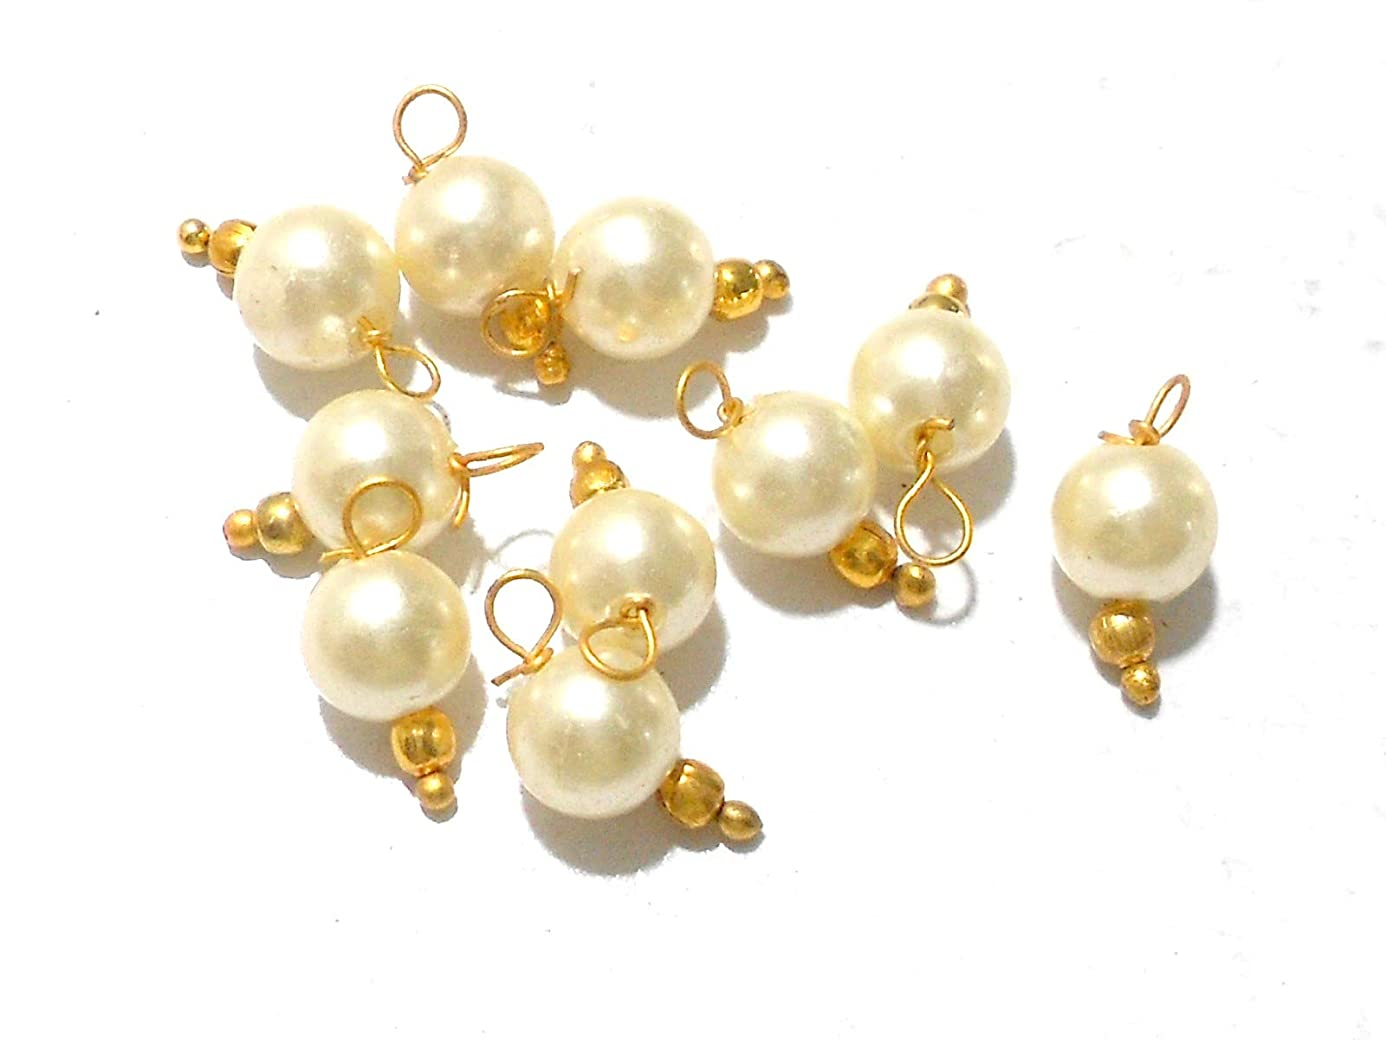 Goelx Pearl Round Designer Hangings for Jewellery Making, Beading & Decorative Art Craft Work - Pack of 50 !! ery3270786